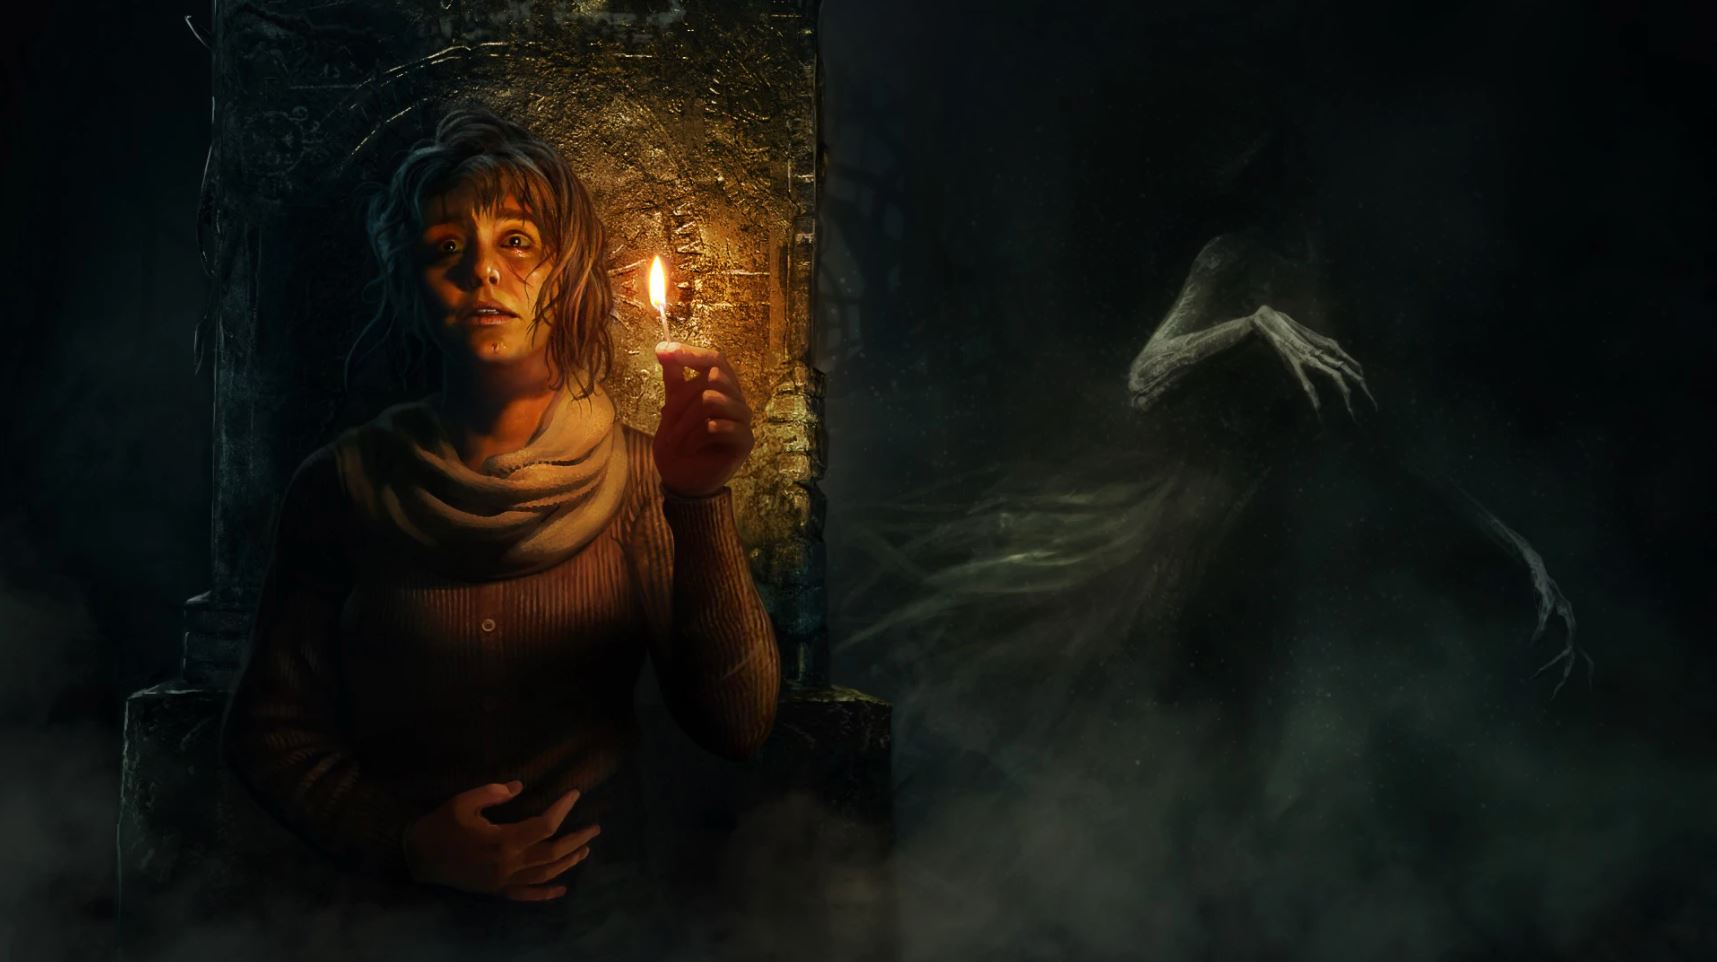 amnesia-rebirth-update-bumps-ps5-framerate-to-60-fps-and-adds-adventure-mode